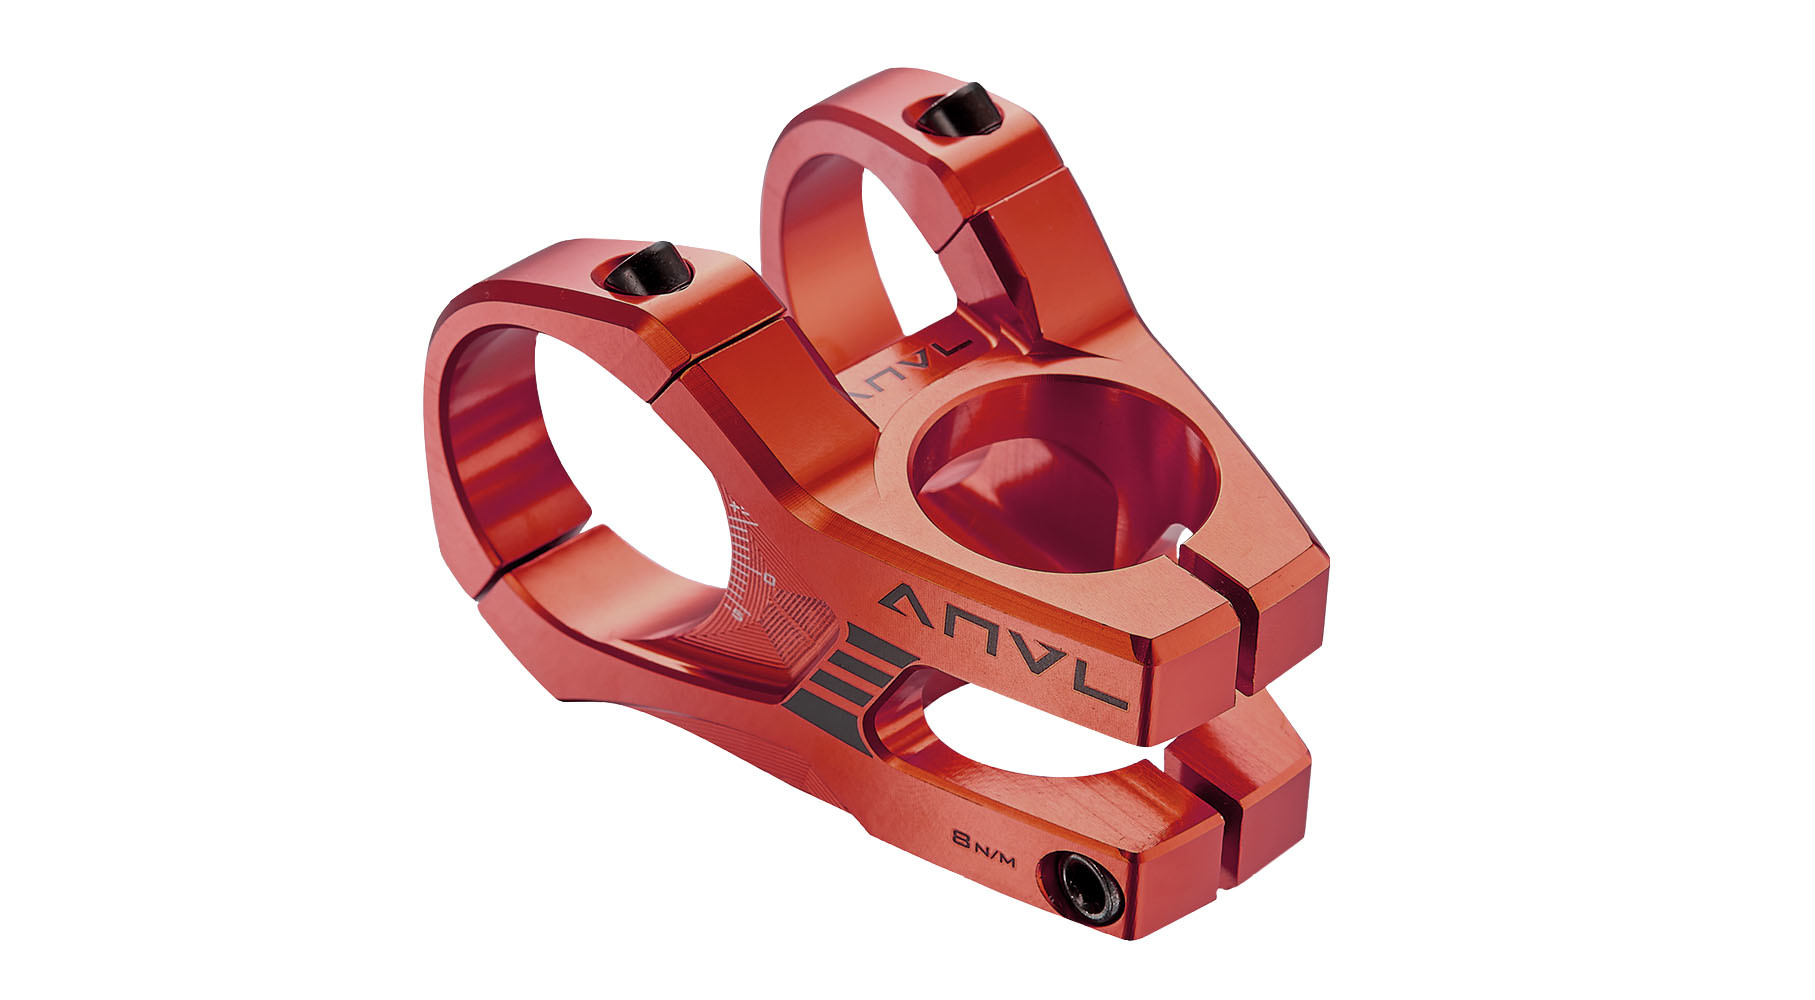 ANVL Components - Swage Stem (40mm, Red)